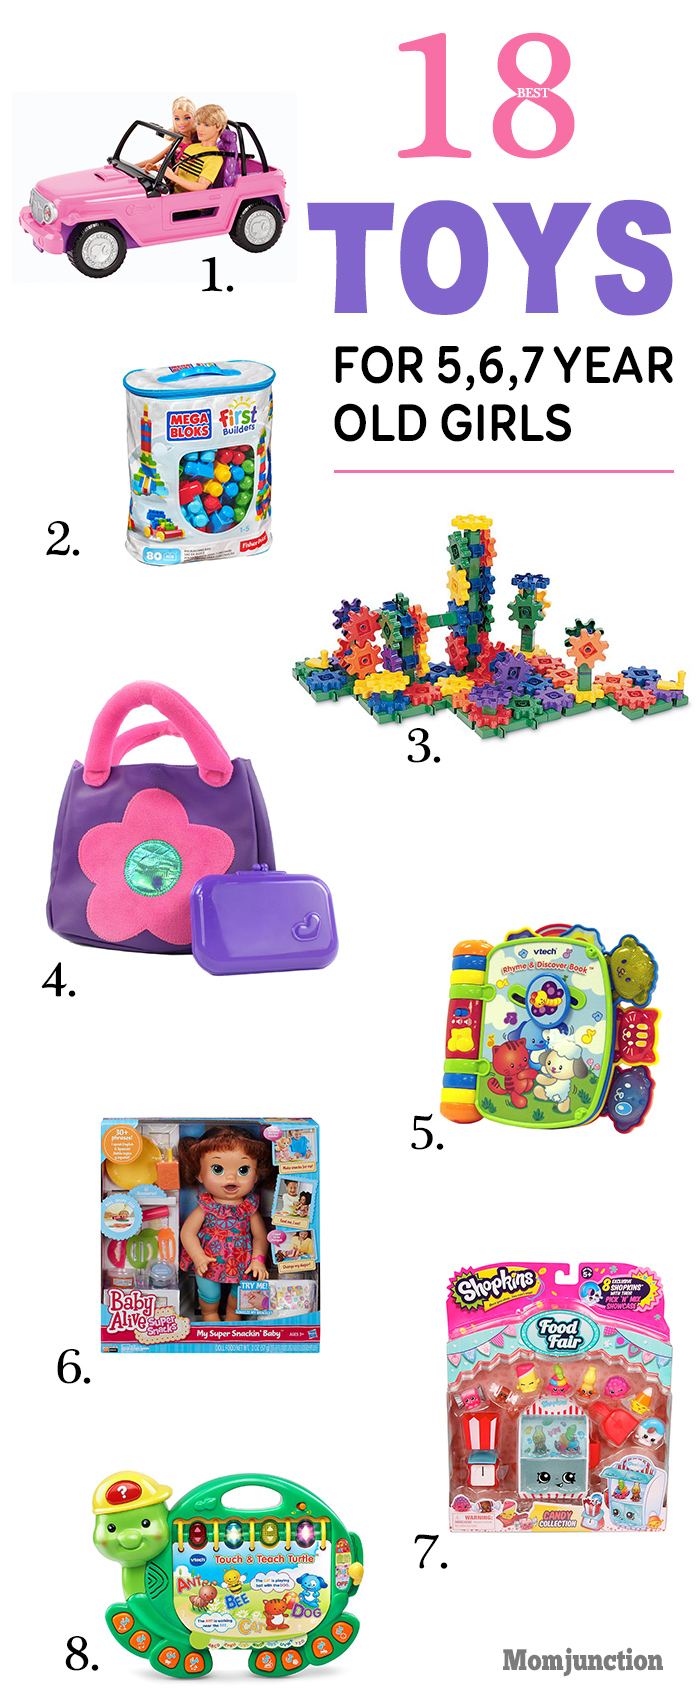 15 Best Toys For 5,6 And 7-year-old Girls